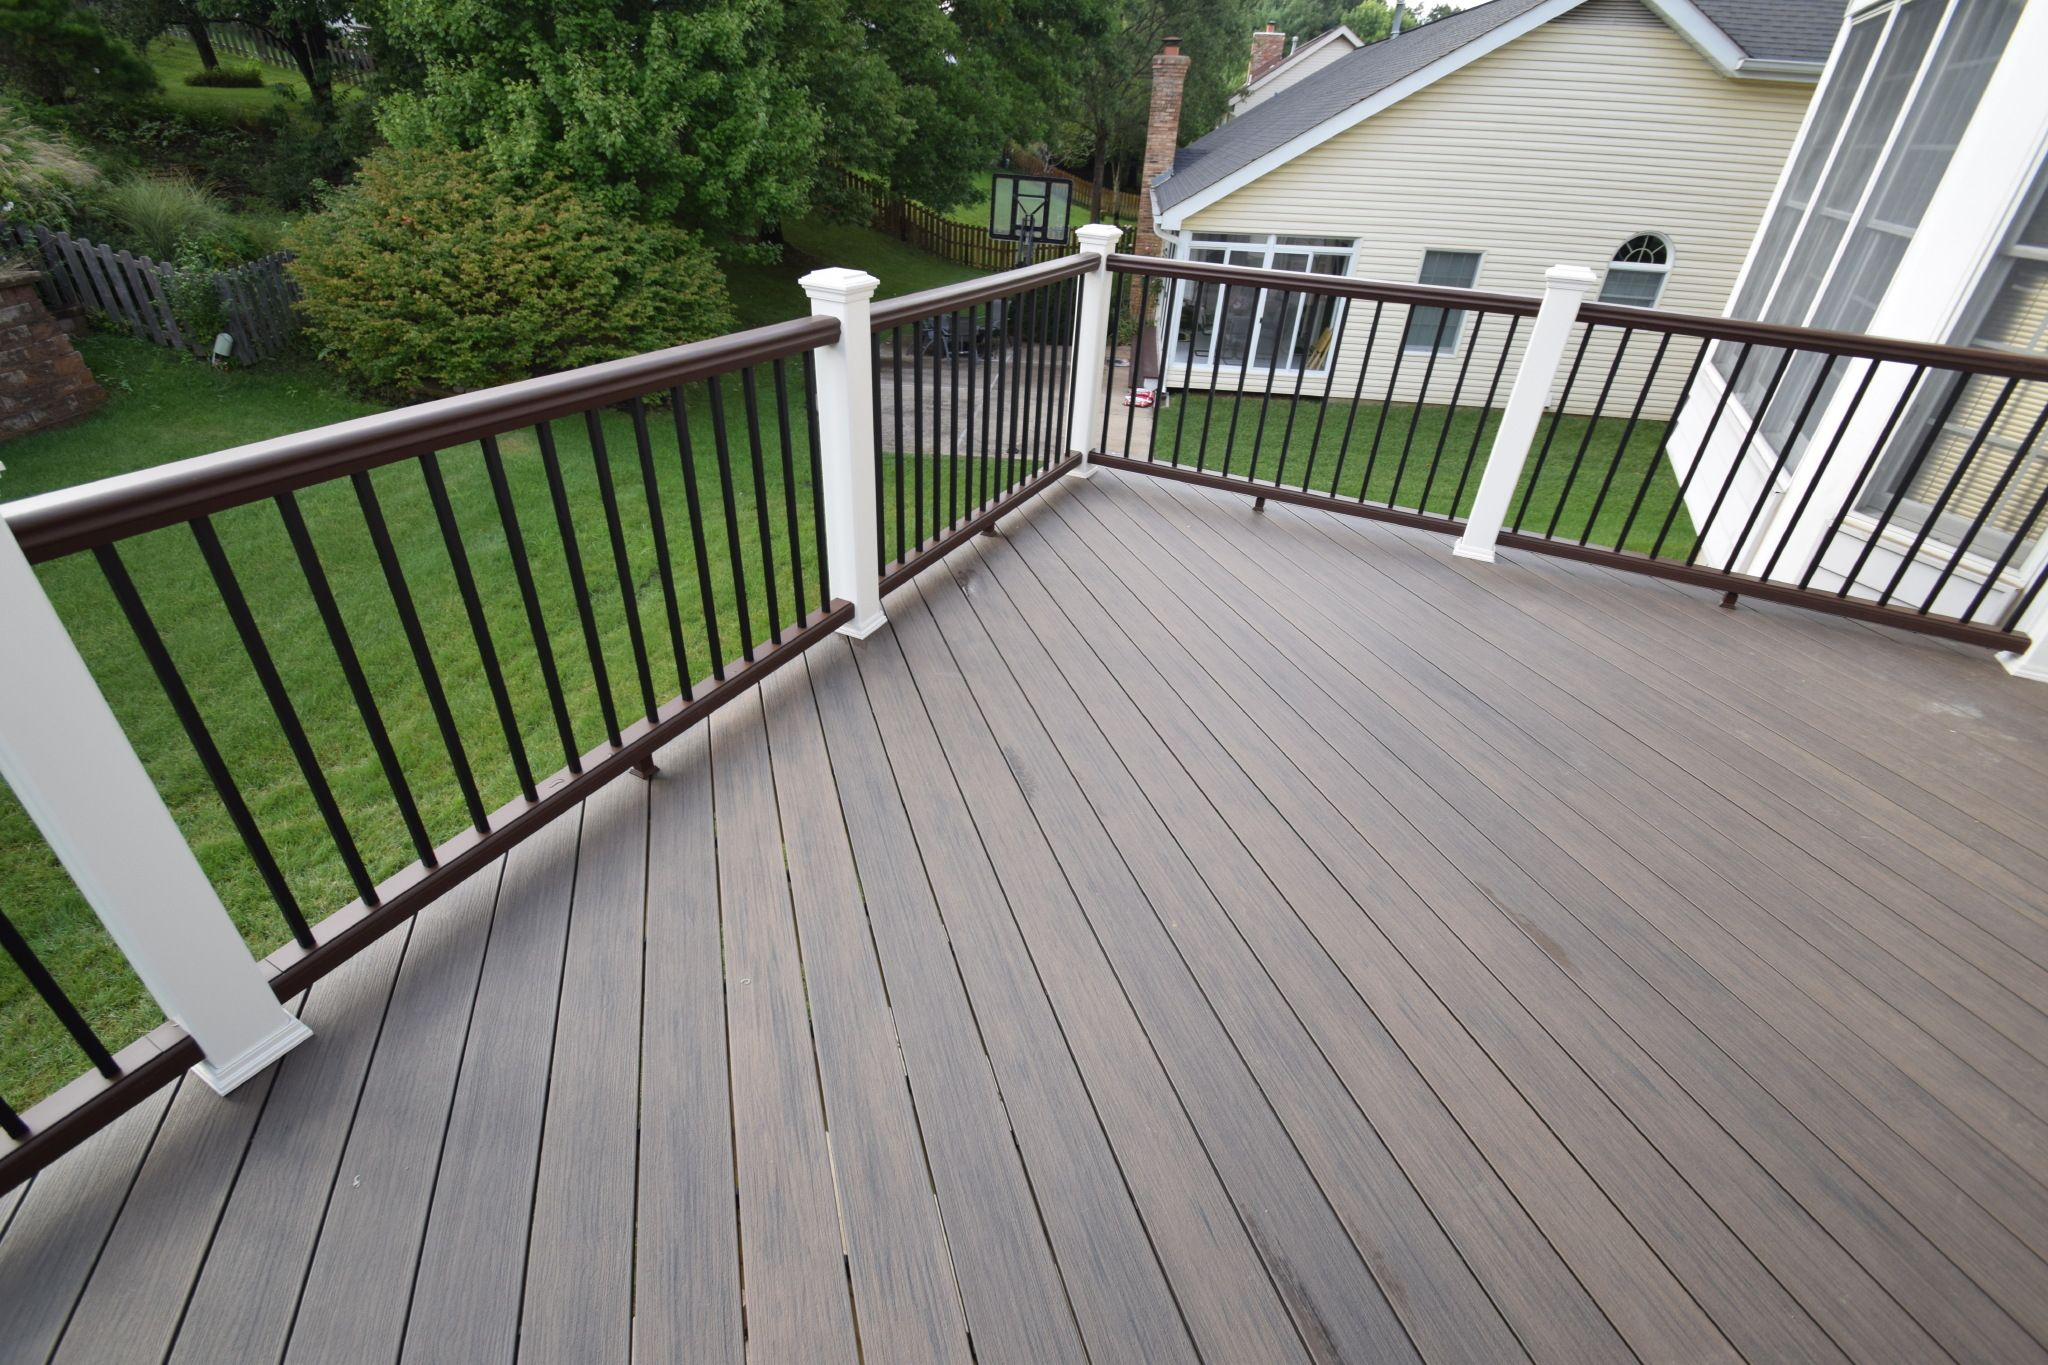 A Deckorators Deck In Ironwood Color Beautiful Rich Wood Grains Brown And White Railing Dream Decks Become Real At Calif Synthetic Decking Custom Decks Deck